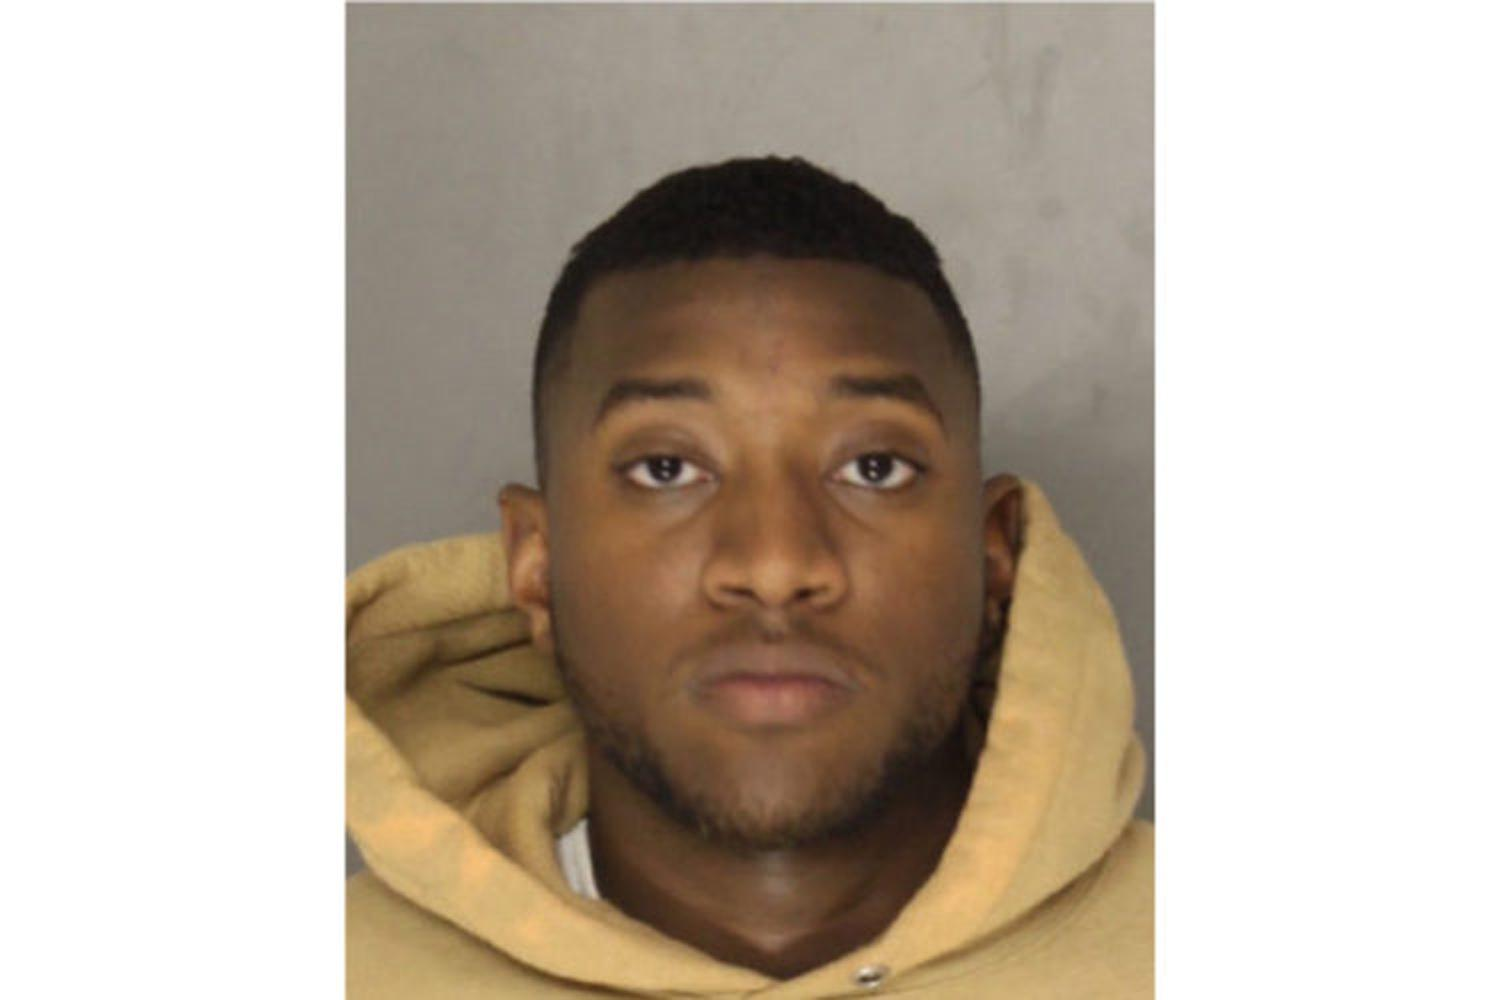 The Allegheny County District Attorney will seek the death penalty for Matthew Darby. (Photo via Pittsburgh Police)